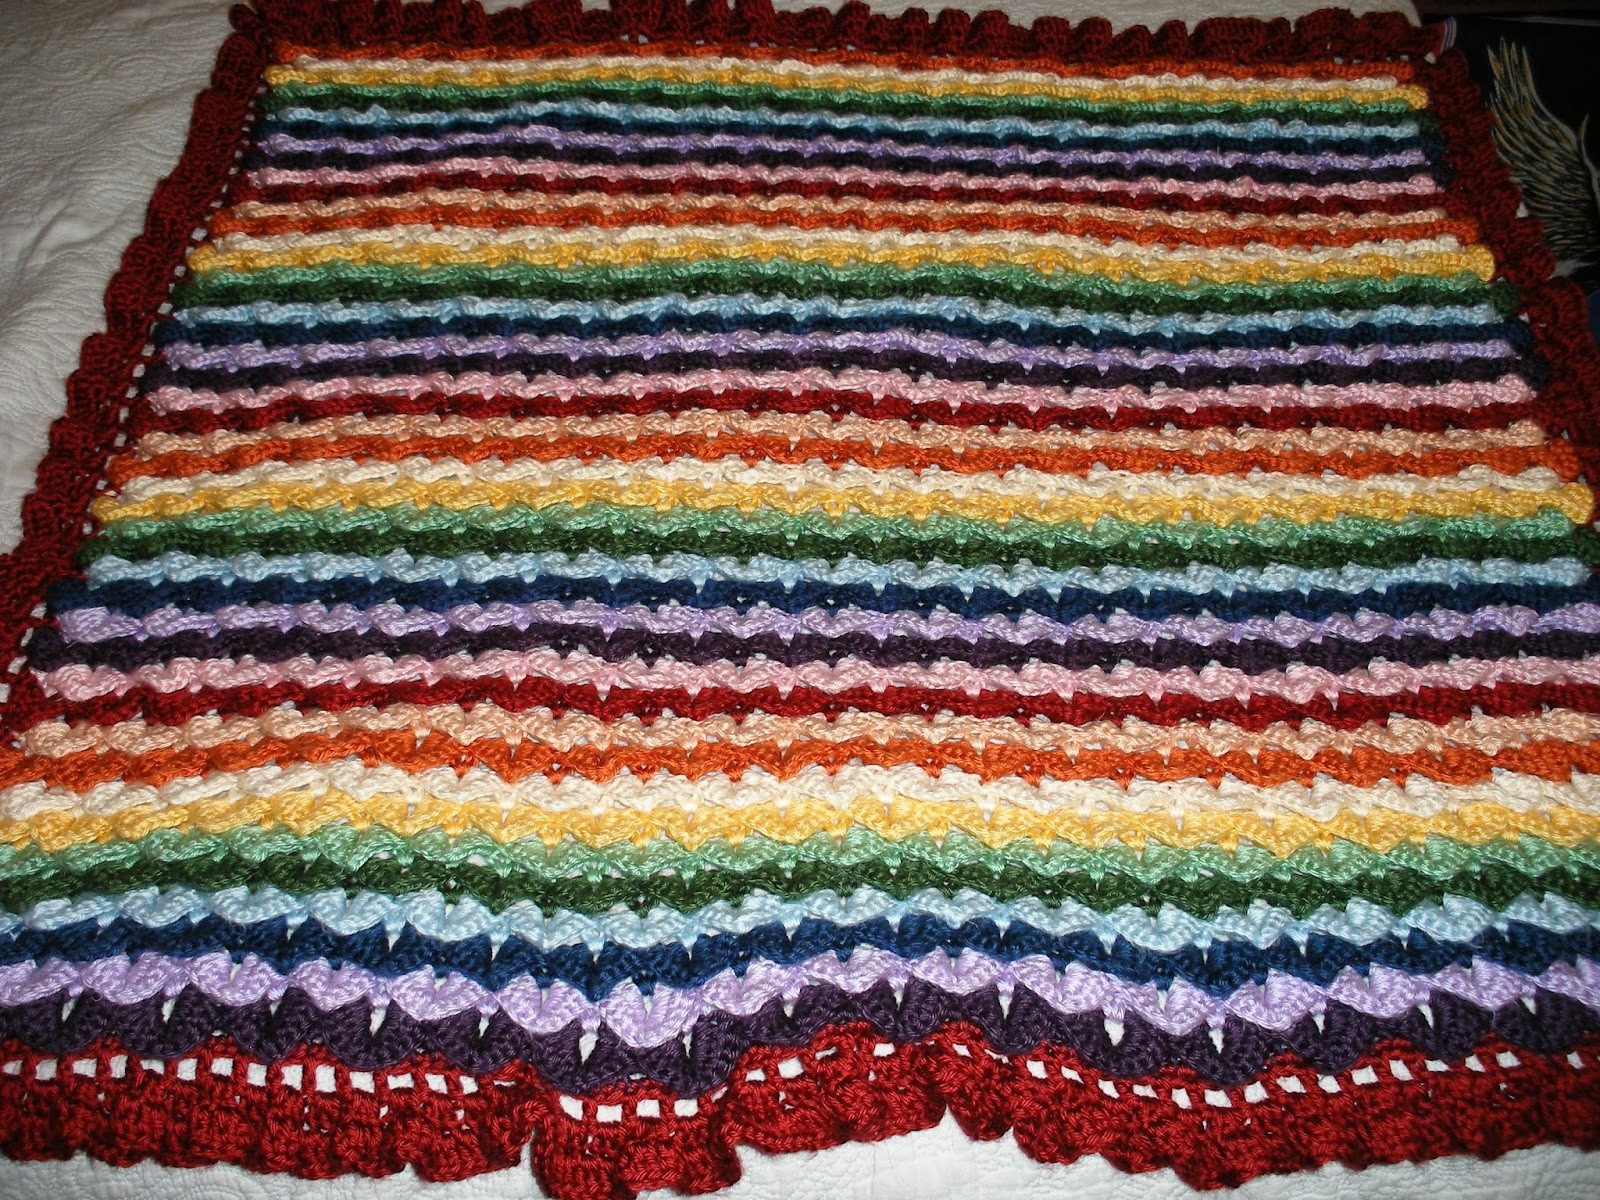 Rainbow Baby Blanket Crochet Pattern Inspirational Paper Ponies Crocheted Crocodile Stitch Rainbow Baby Blanket Of Attractive 46 Models Rainbow Baby Blanket Crochet Pattern